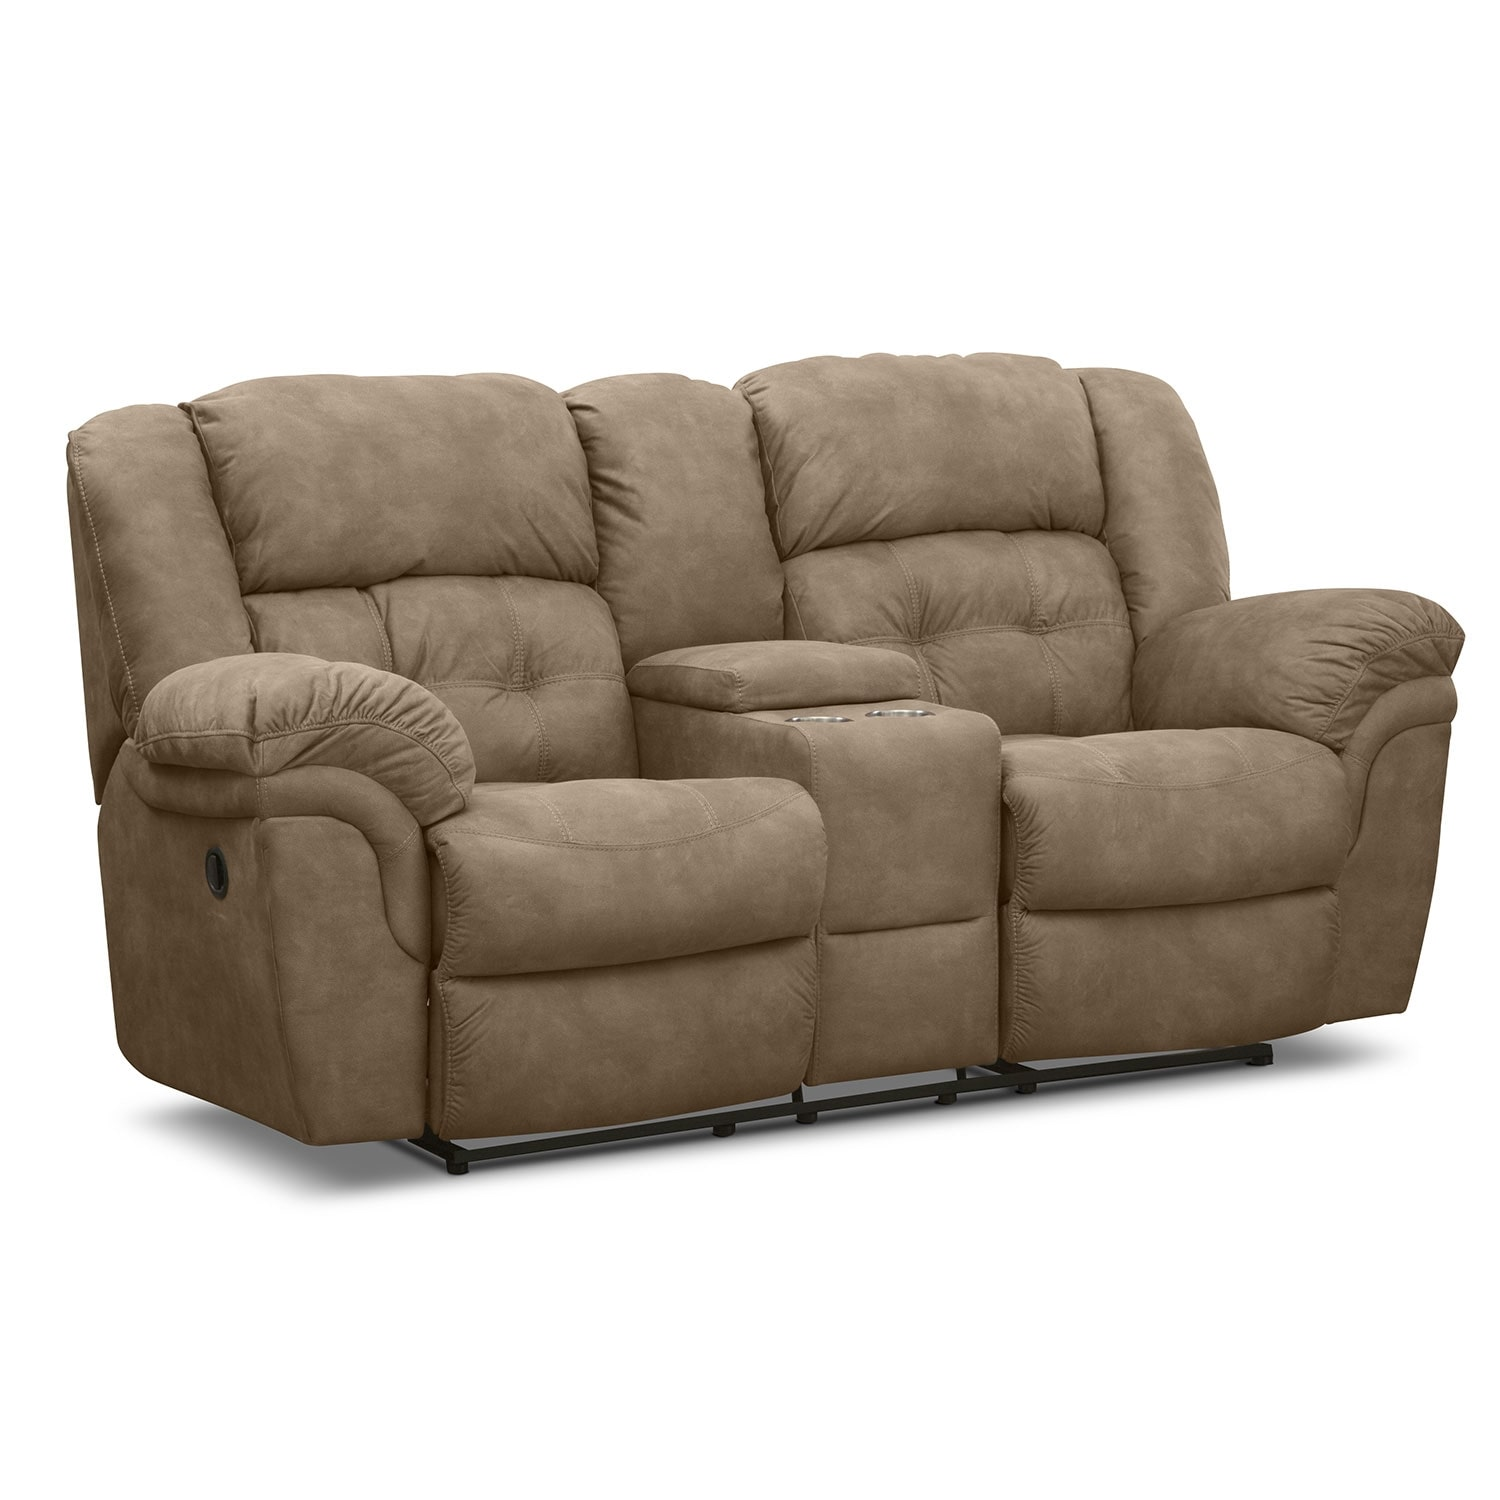 Living Room Furniture - Lancer Manual Reclining Loveseat with Console - Pecan